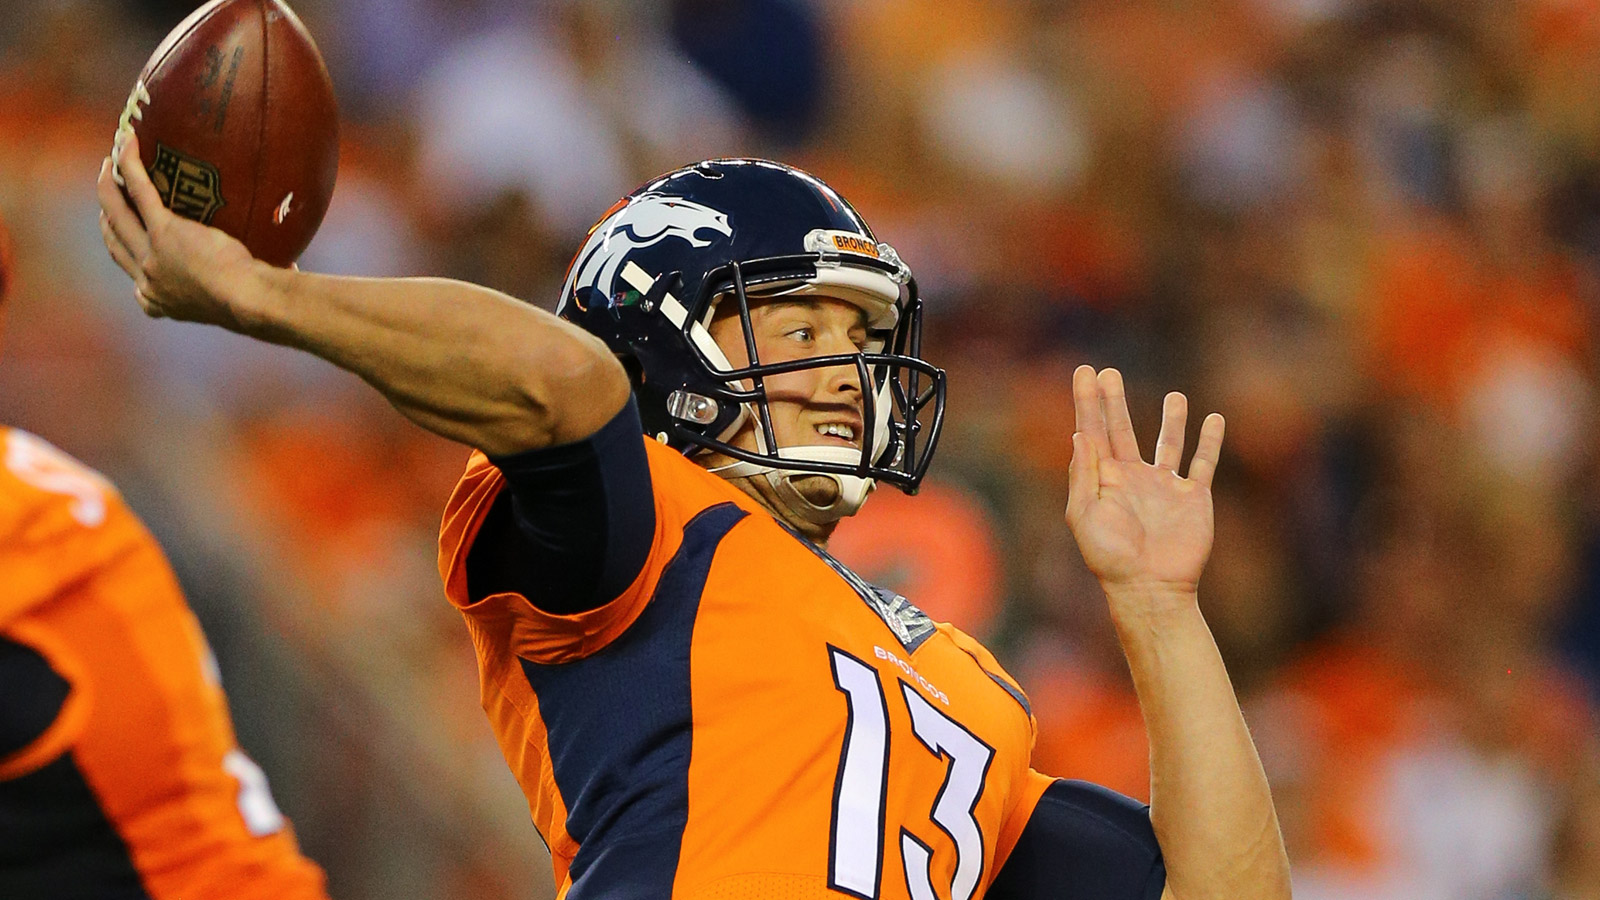 Quarterback Trevor Siemian #13 of the Denver Broncos throws a pass during the first quarter against the Los Angeles Rams at Sports Authority Field Field at Mile High on August 27, 2016 in Denver, Colorado. (Photo by Justin Edmonds/Getty Images)